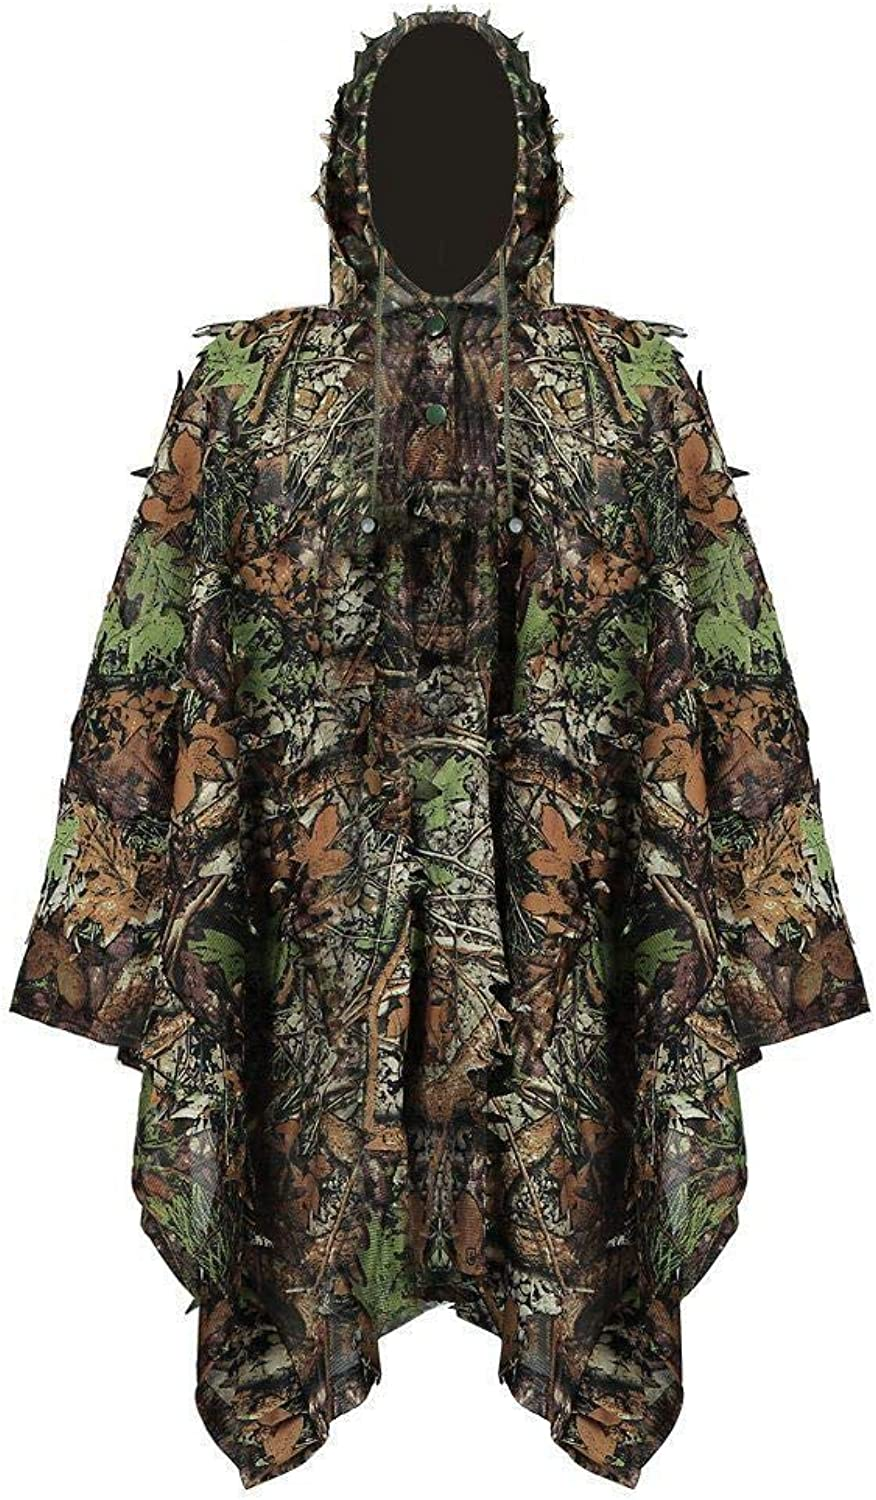 E5e10 Adult Outdoor Ghillie Suit 3D Leafy Leaves Camouflage Lightweight Clothing Jungle Woodland Hunting Camo Poncho Cloak